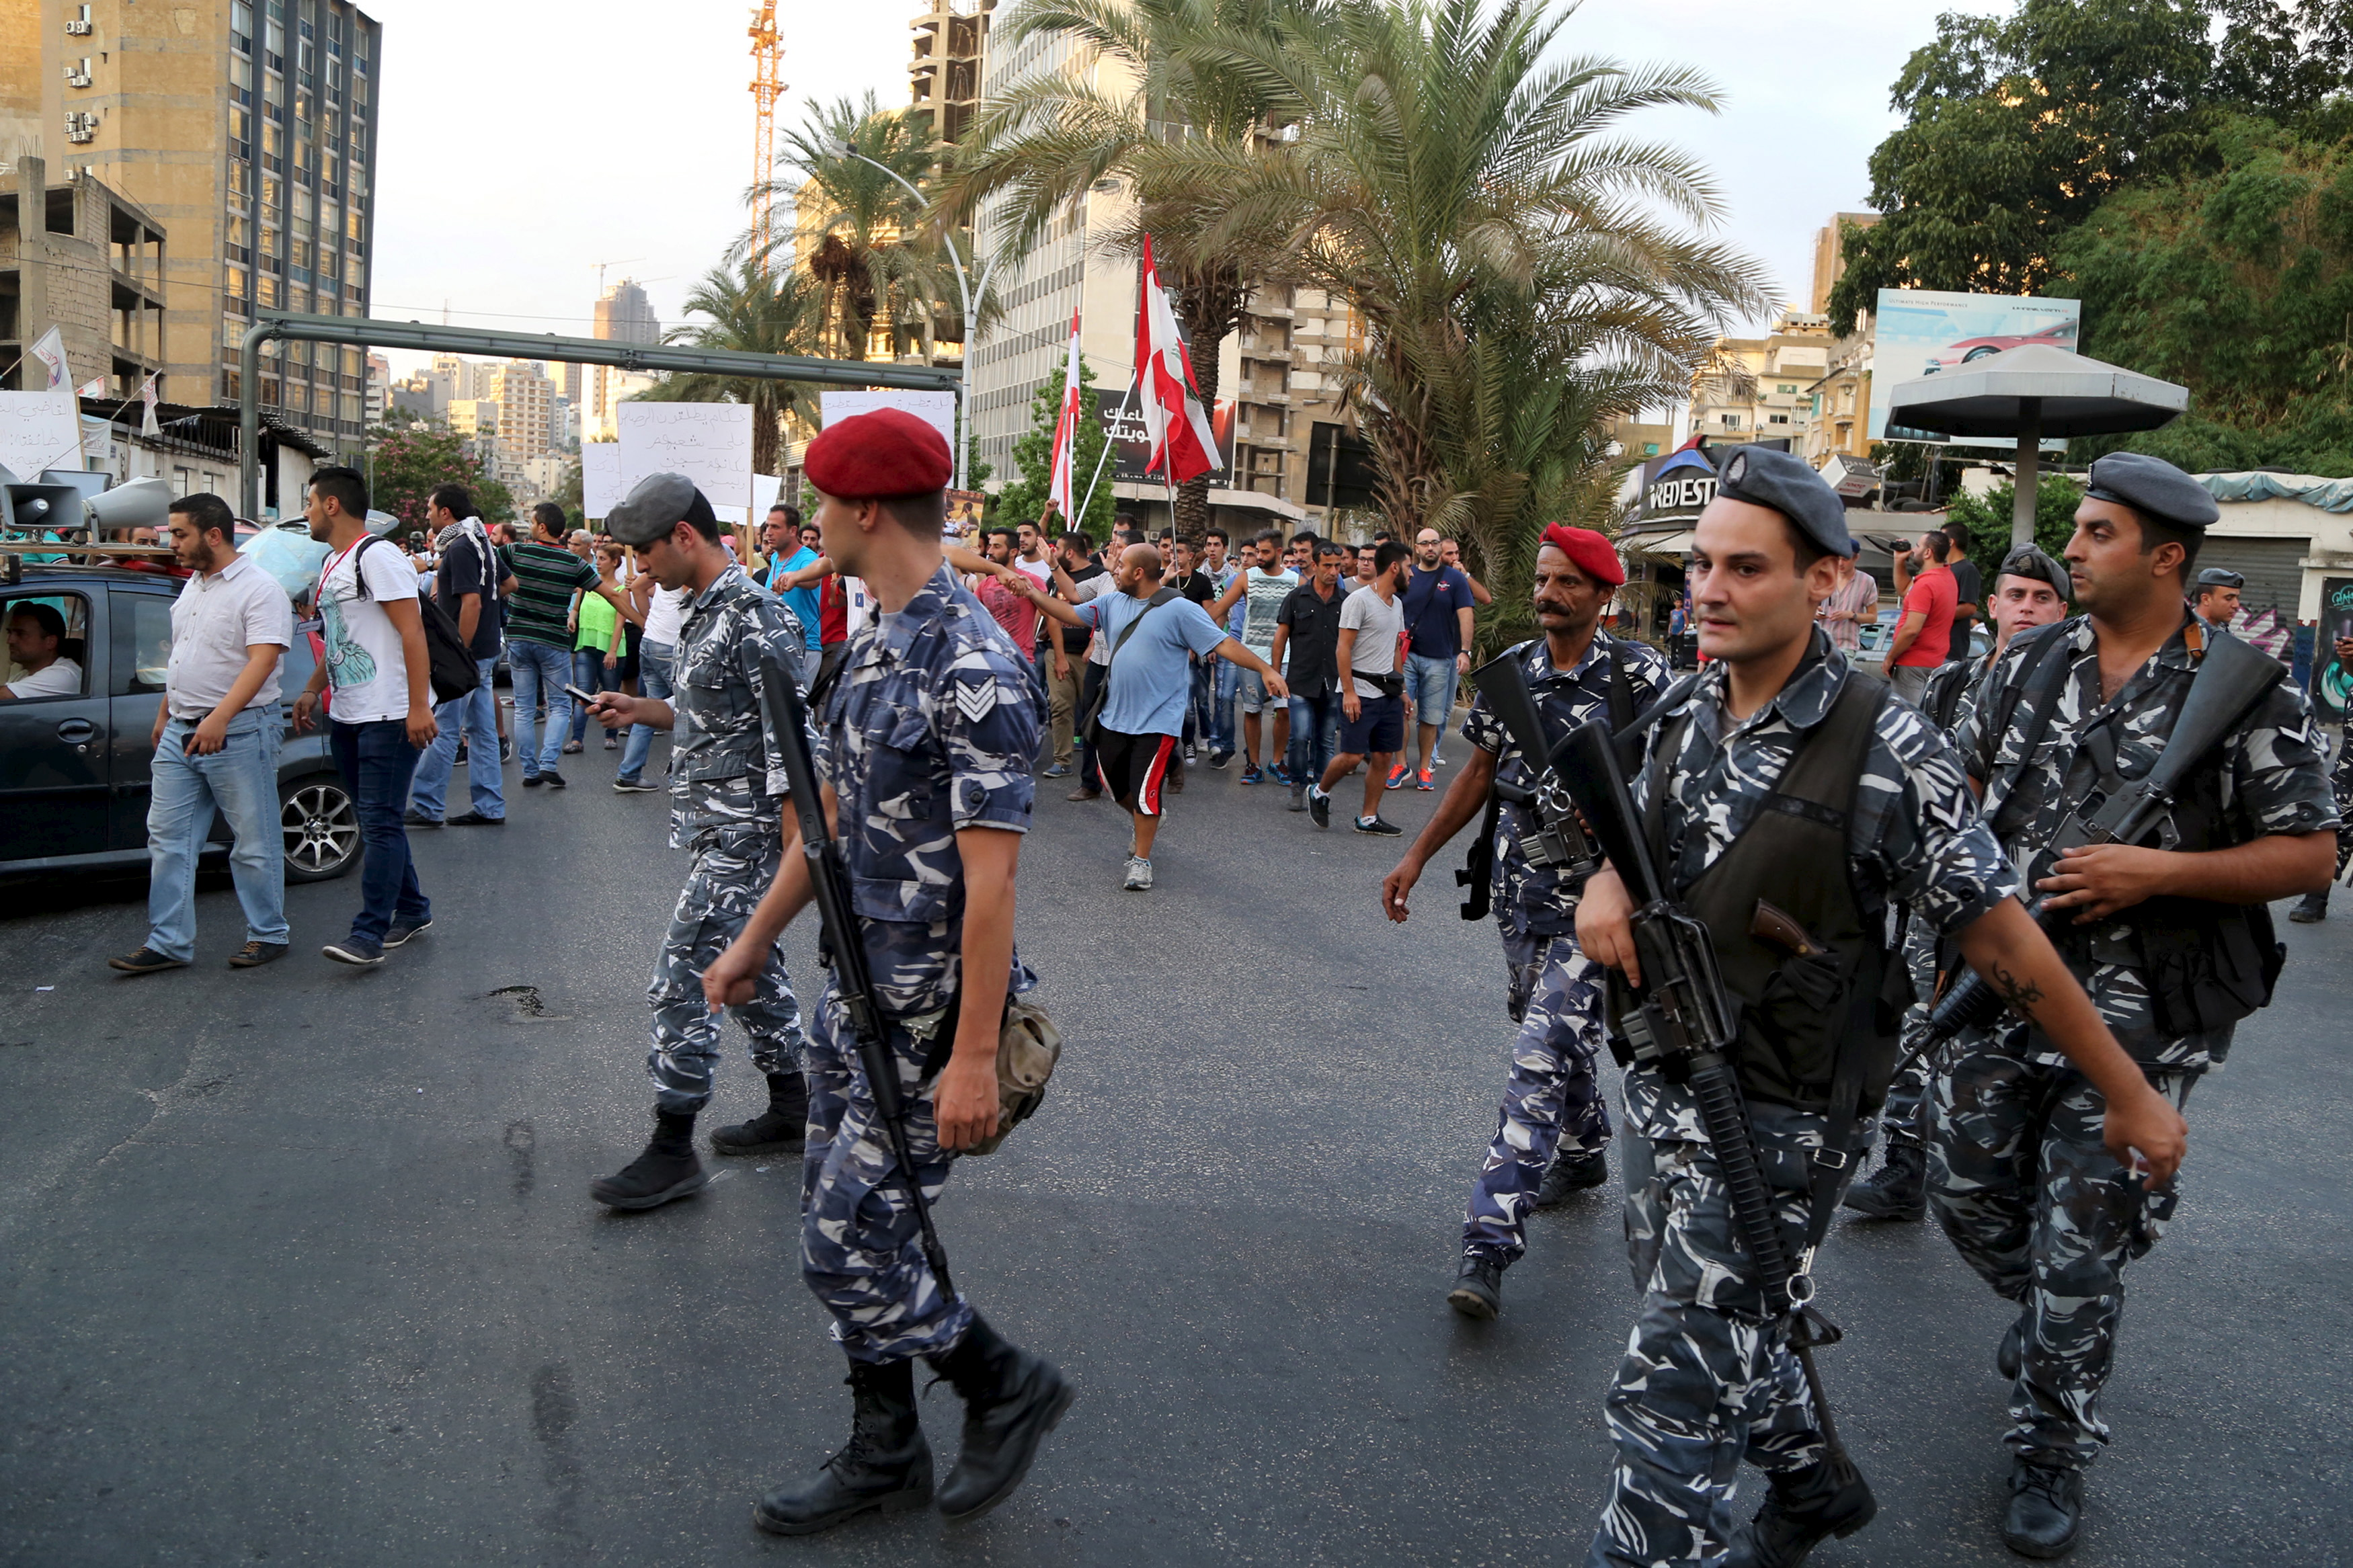 Members of Lebanon's security services escort demonstrators marching toward the government building in Beirut on Aug. 24. Several hundred Lebanese protesters chanted anti-government slogans as they marched on Monday after two days of much larger rallies that descended into violence. Photo by Aziz Taher/Reuters